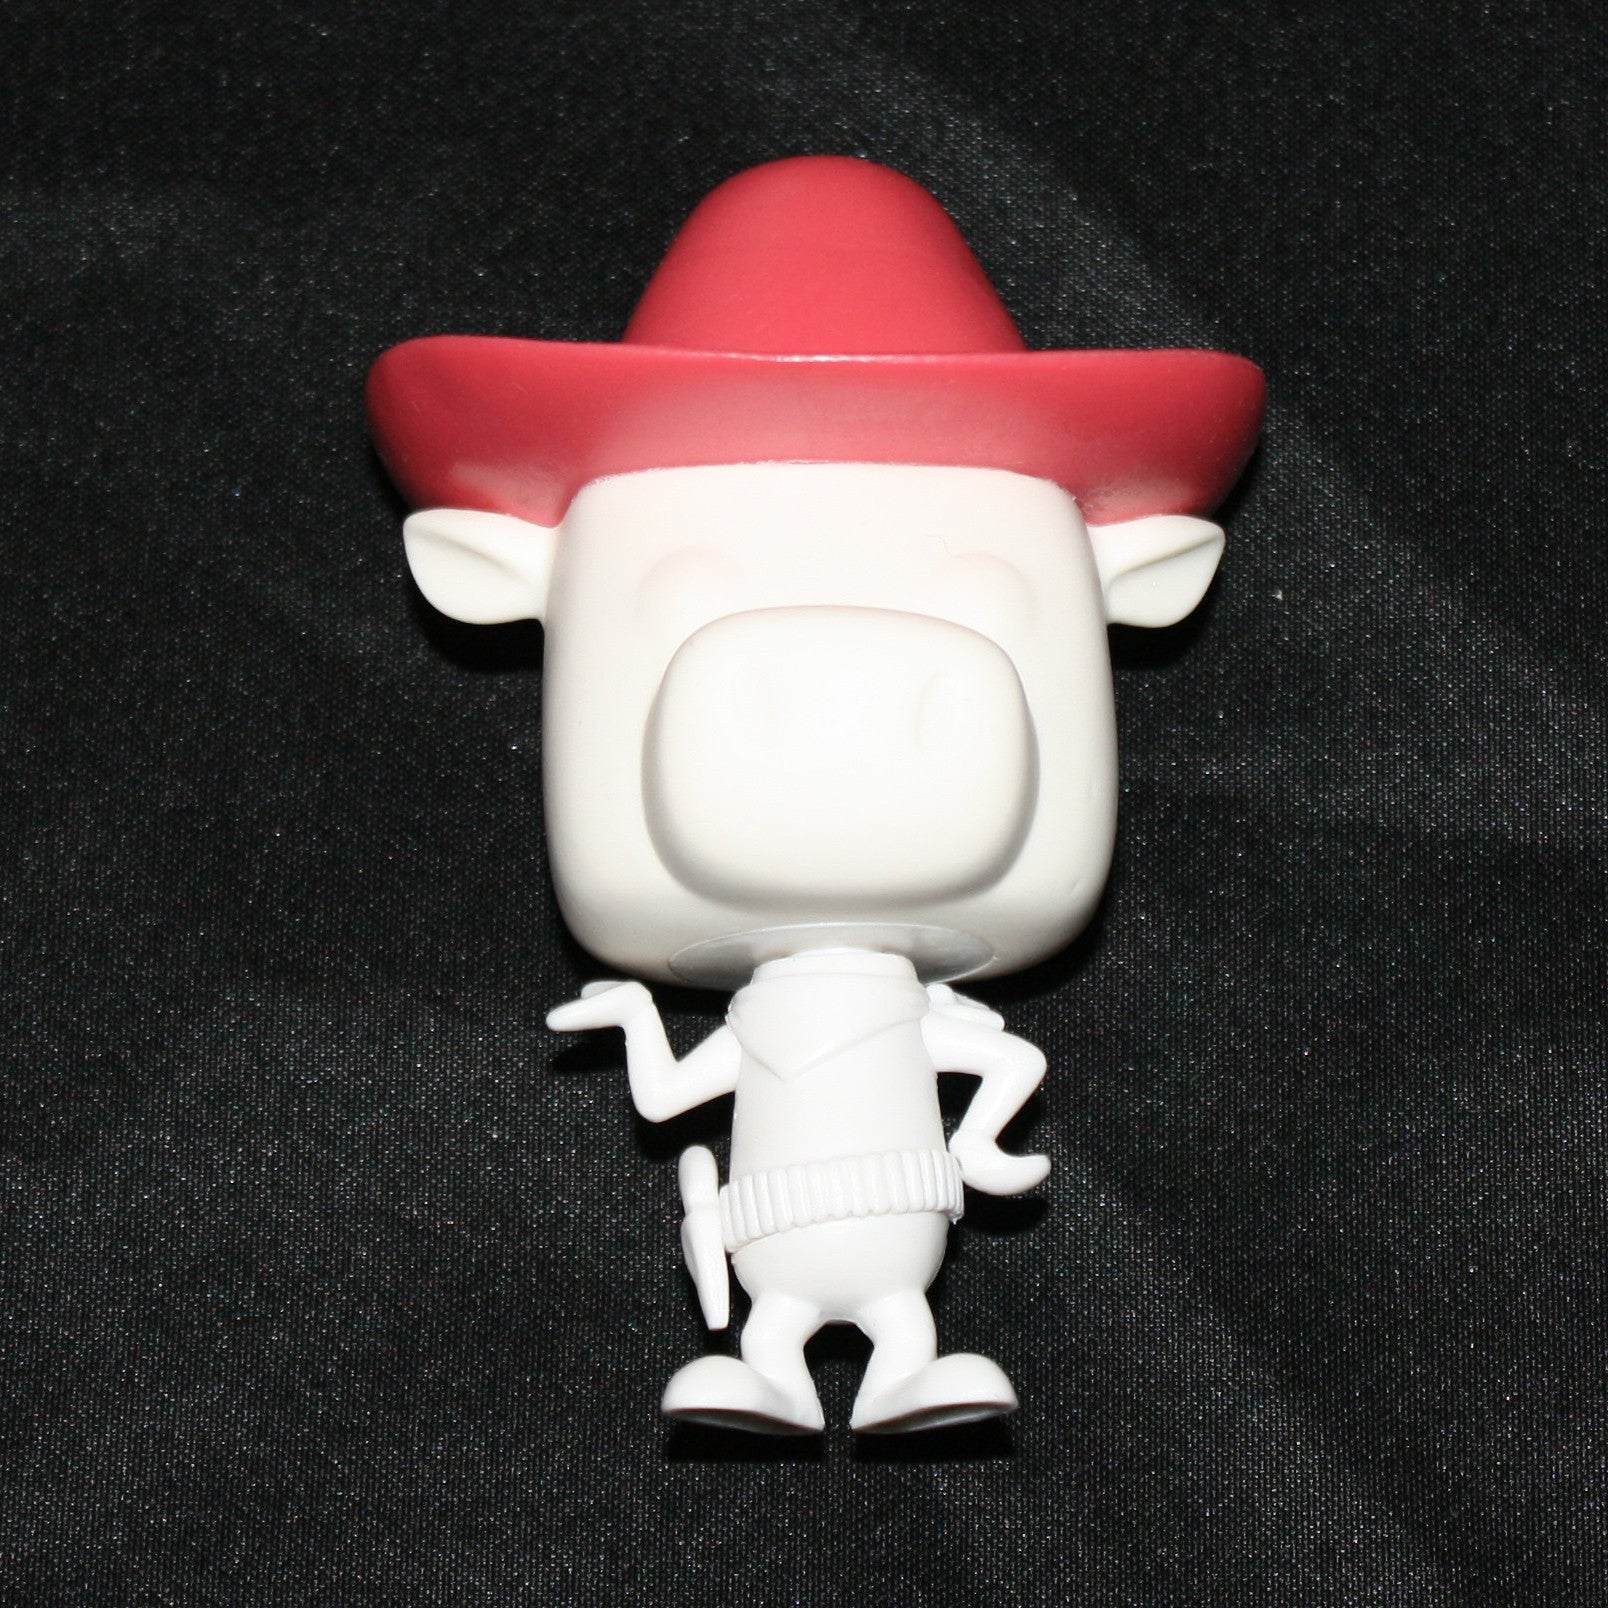 Quick Draw McGraw [Hanna Barbera] Proto